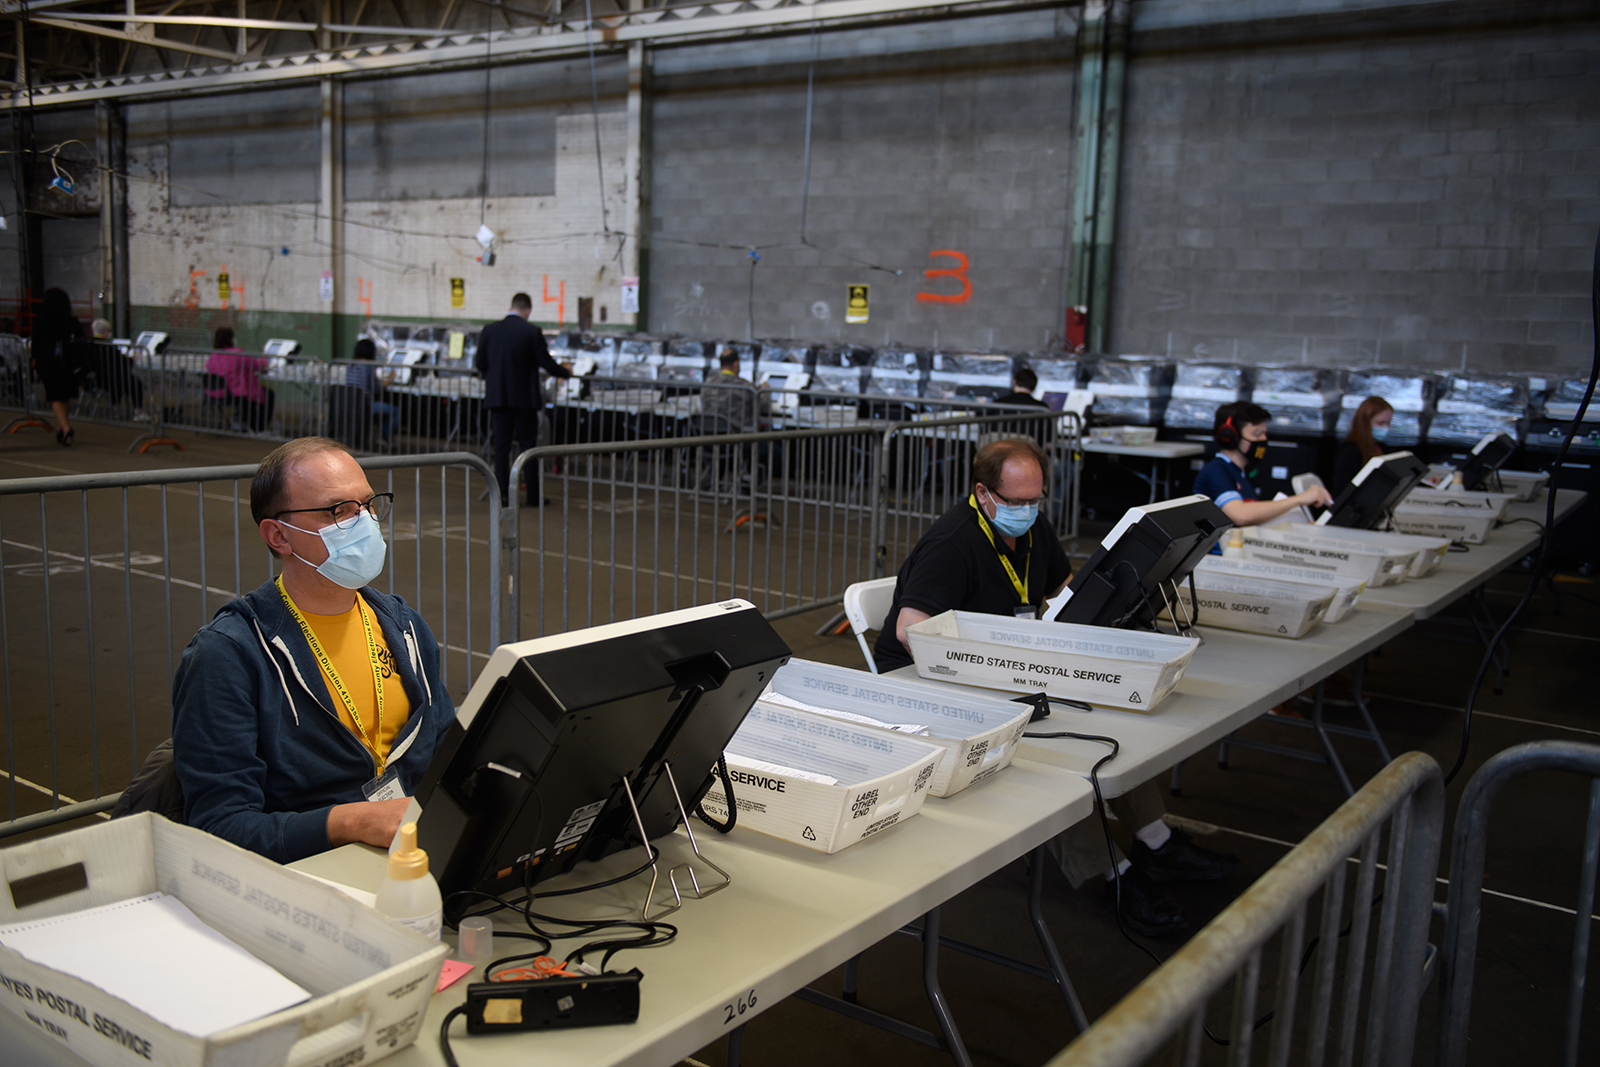 Election officials proceed with the counting of ballots at the Allegheny County elections warehouse on November 6, in Pittsburgh, Pennsylvania.